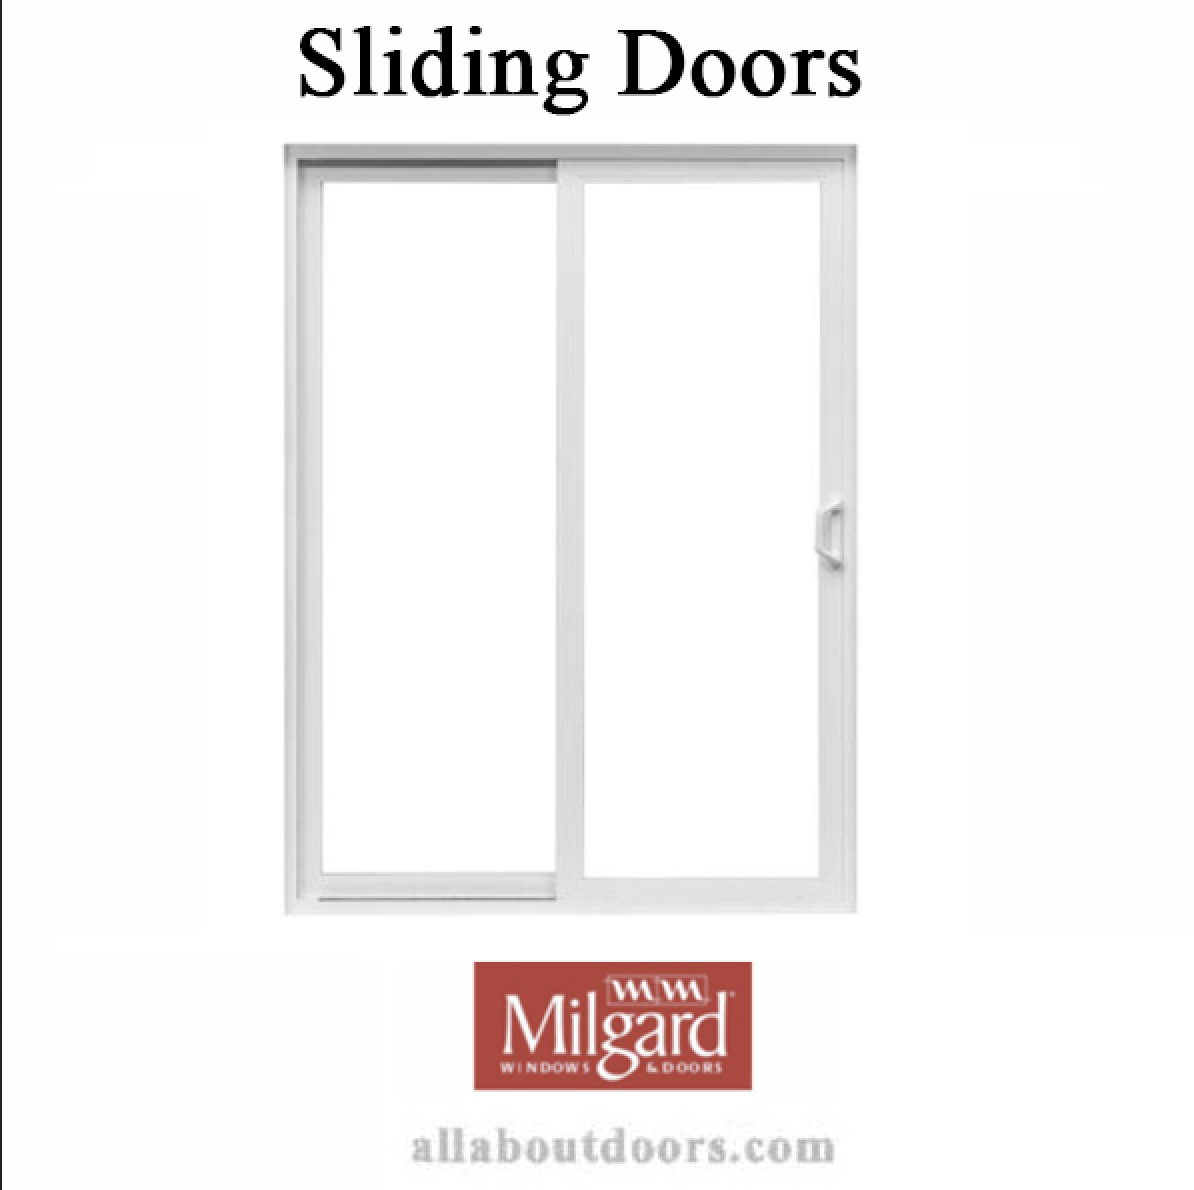 Milgard Sliding Door Hardware